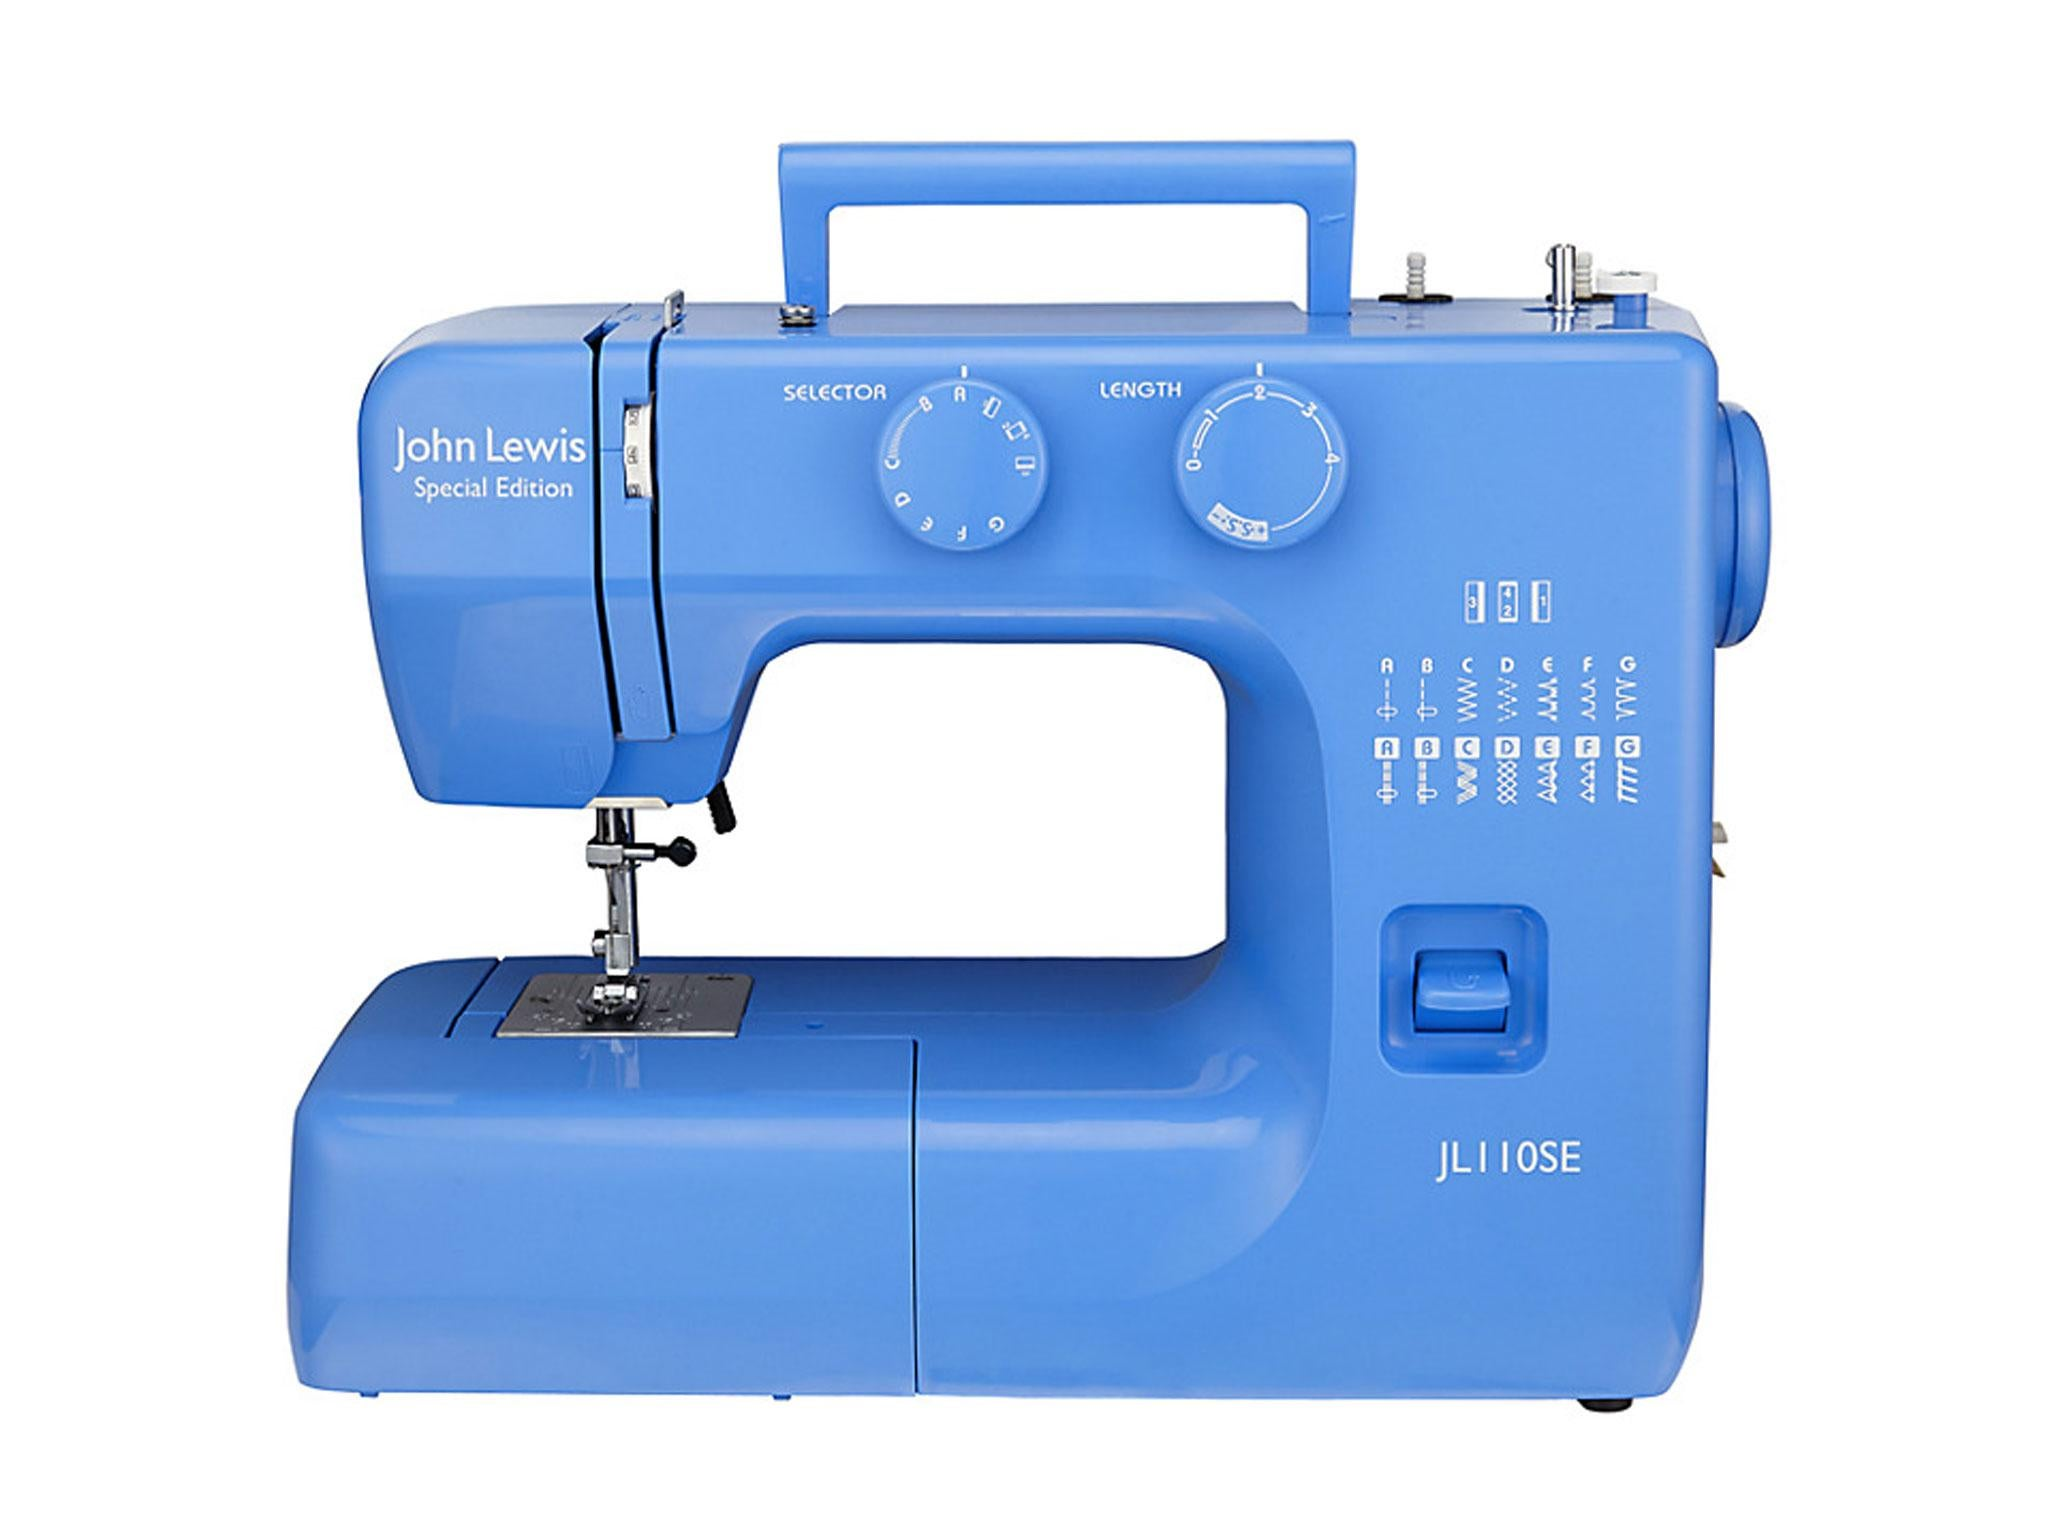 7 best sewing machines for beginners the independent john lewis jl110 sewing machine 99 john lewis fandeluxe Gallery